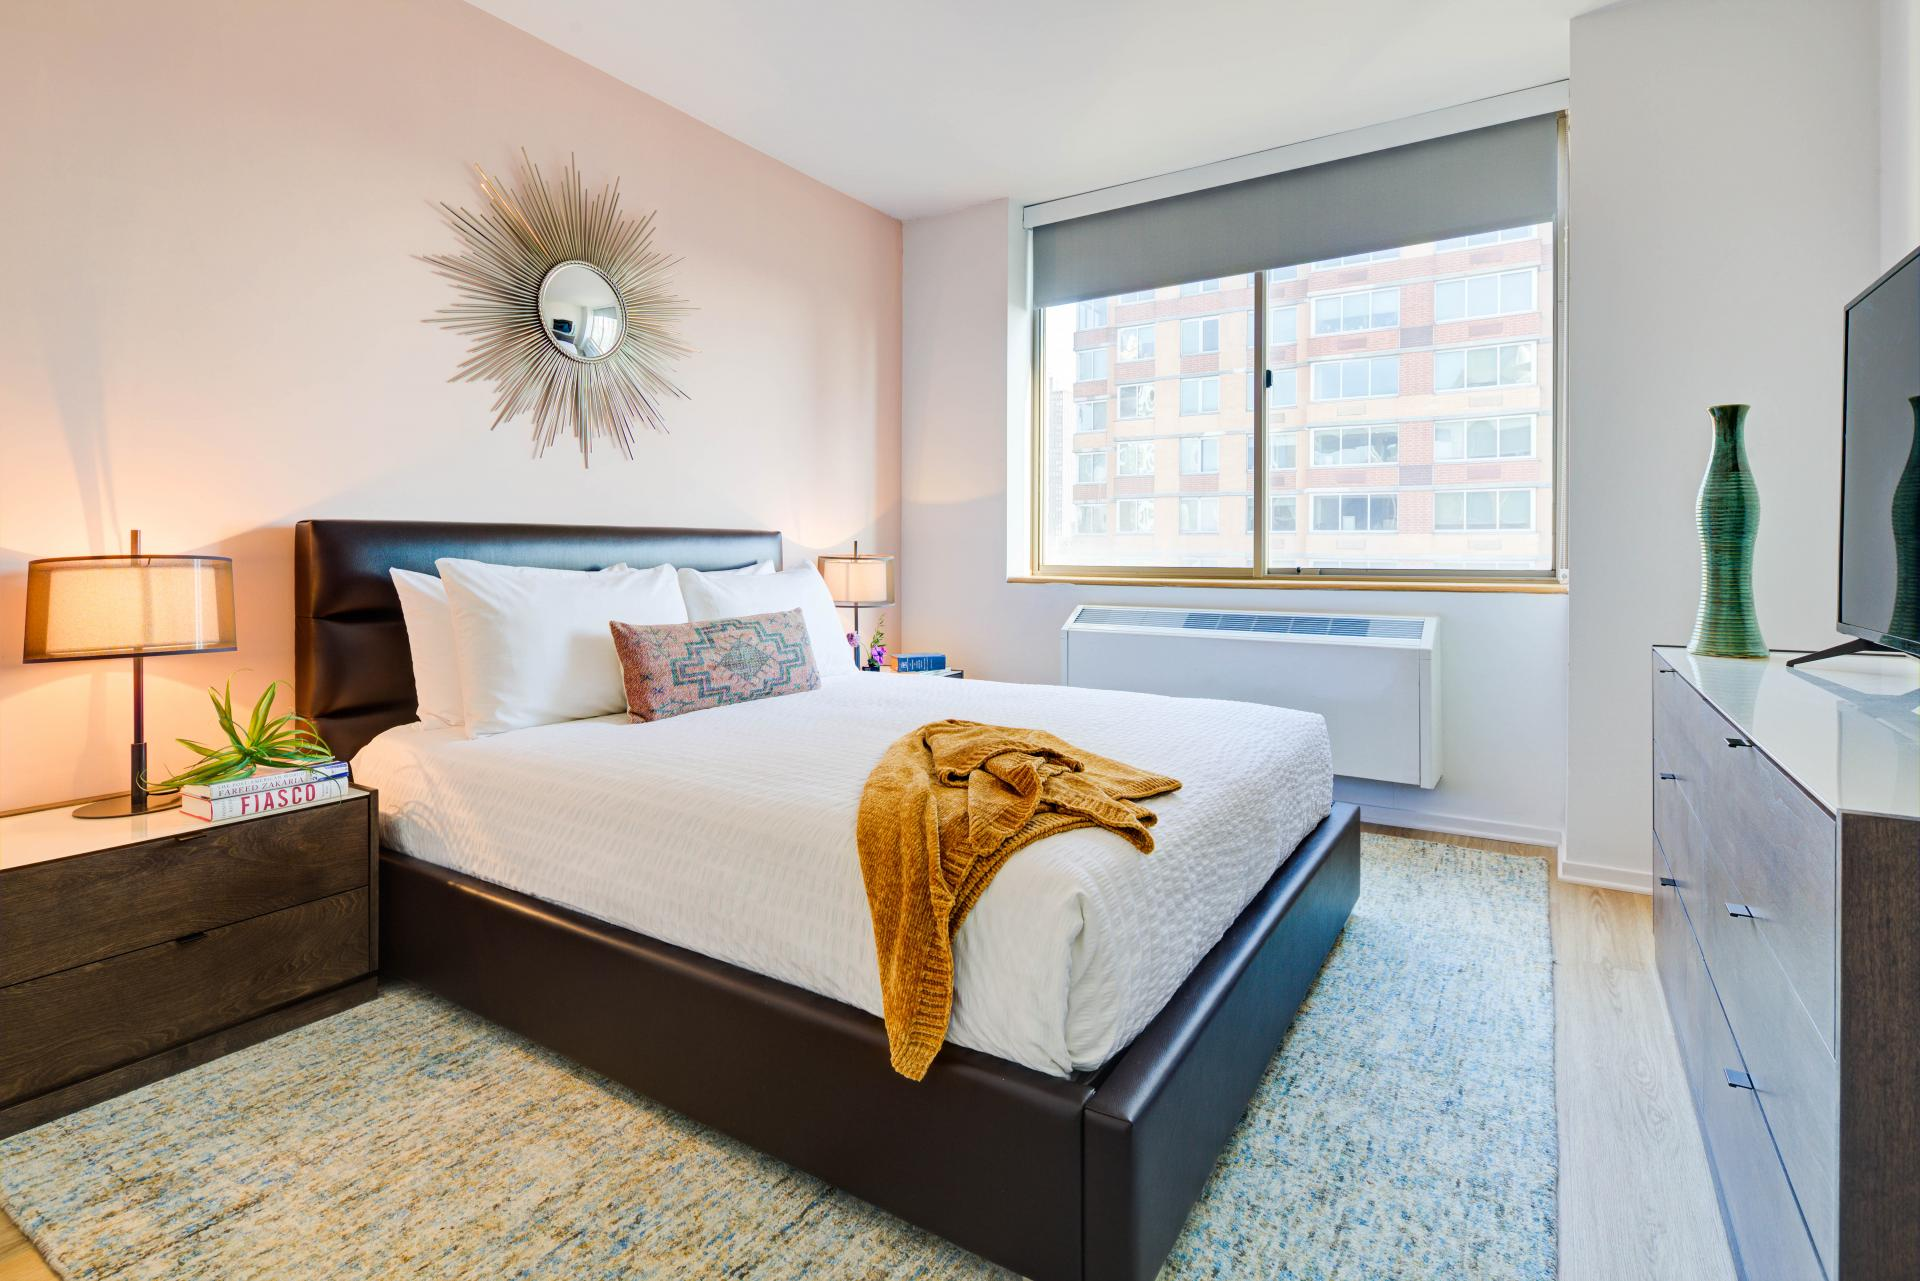 Bedroom at 777 Sixth Avenue Apartments, Chelsea, New York